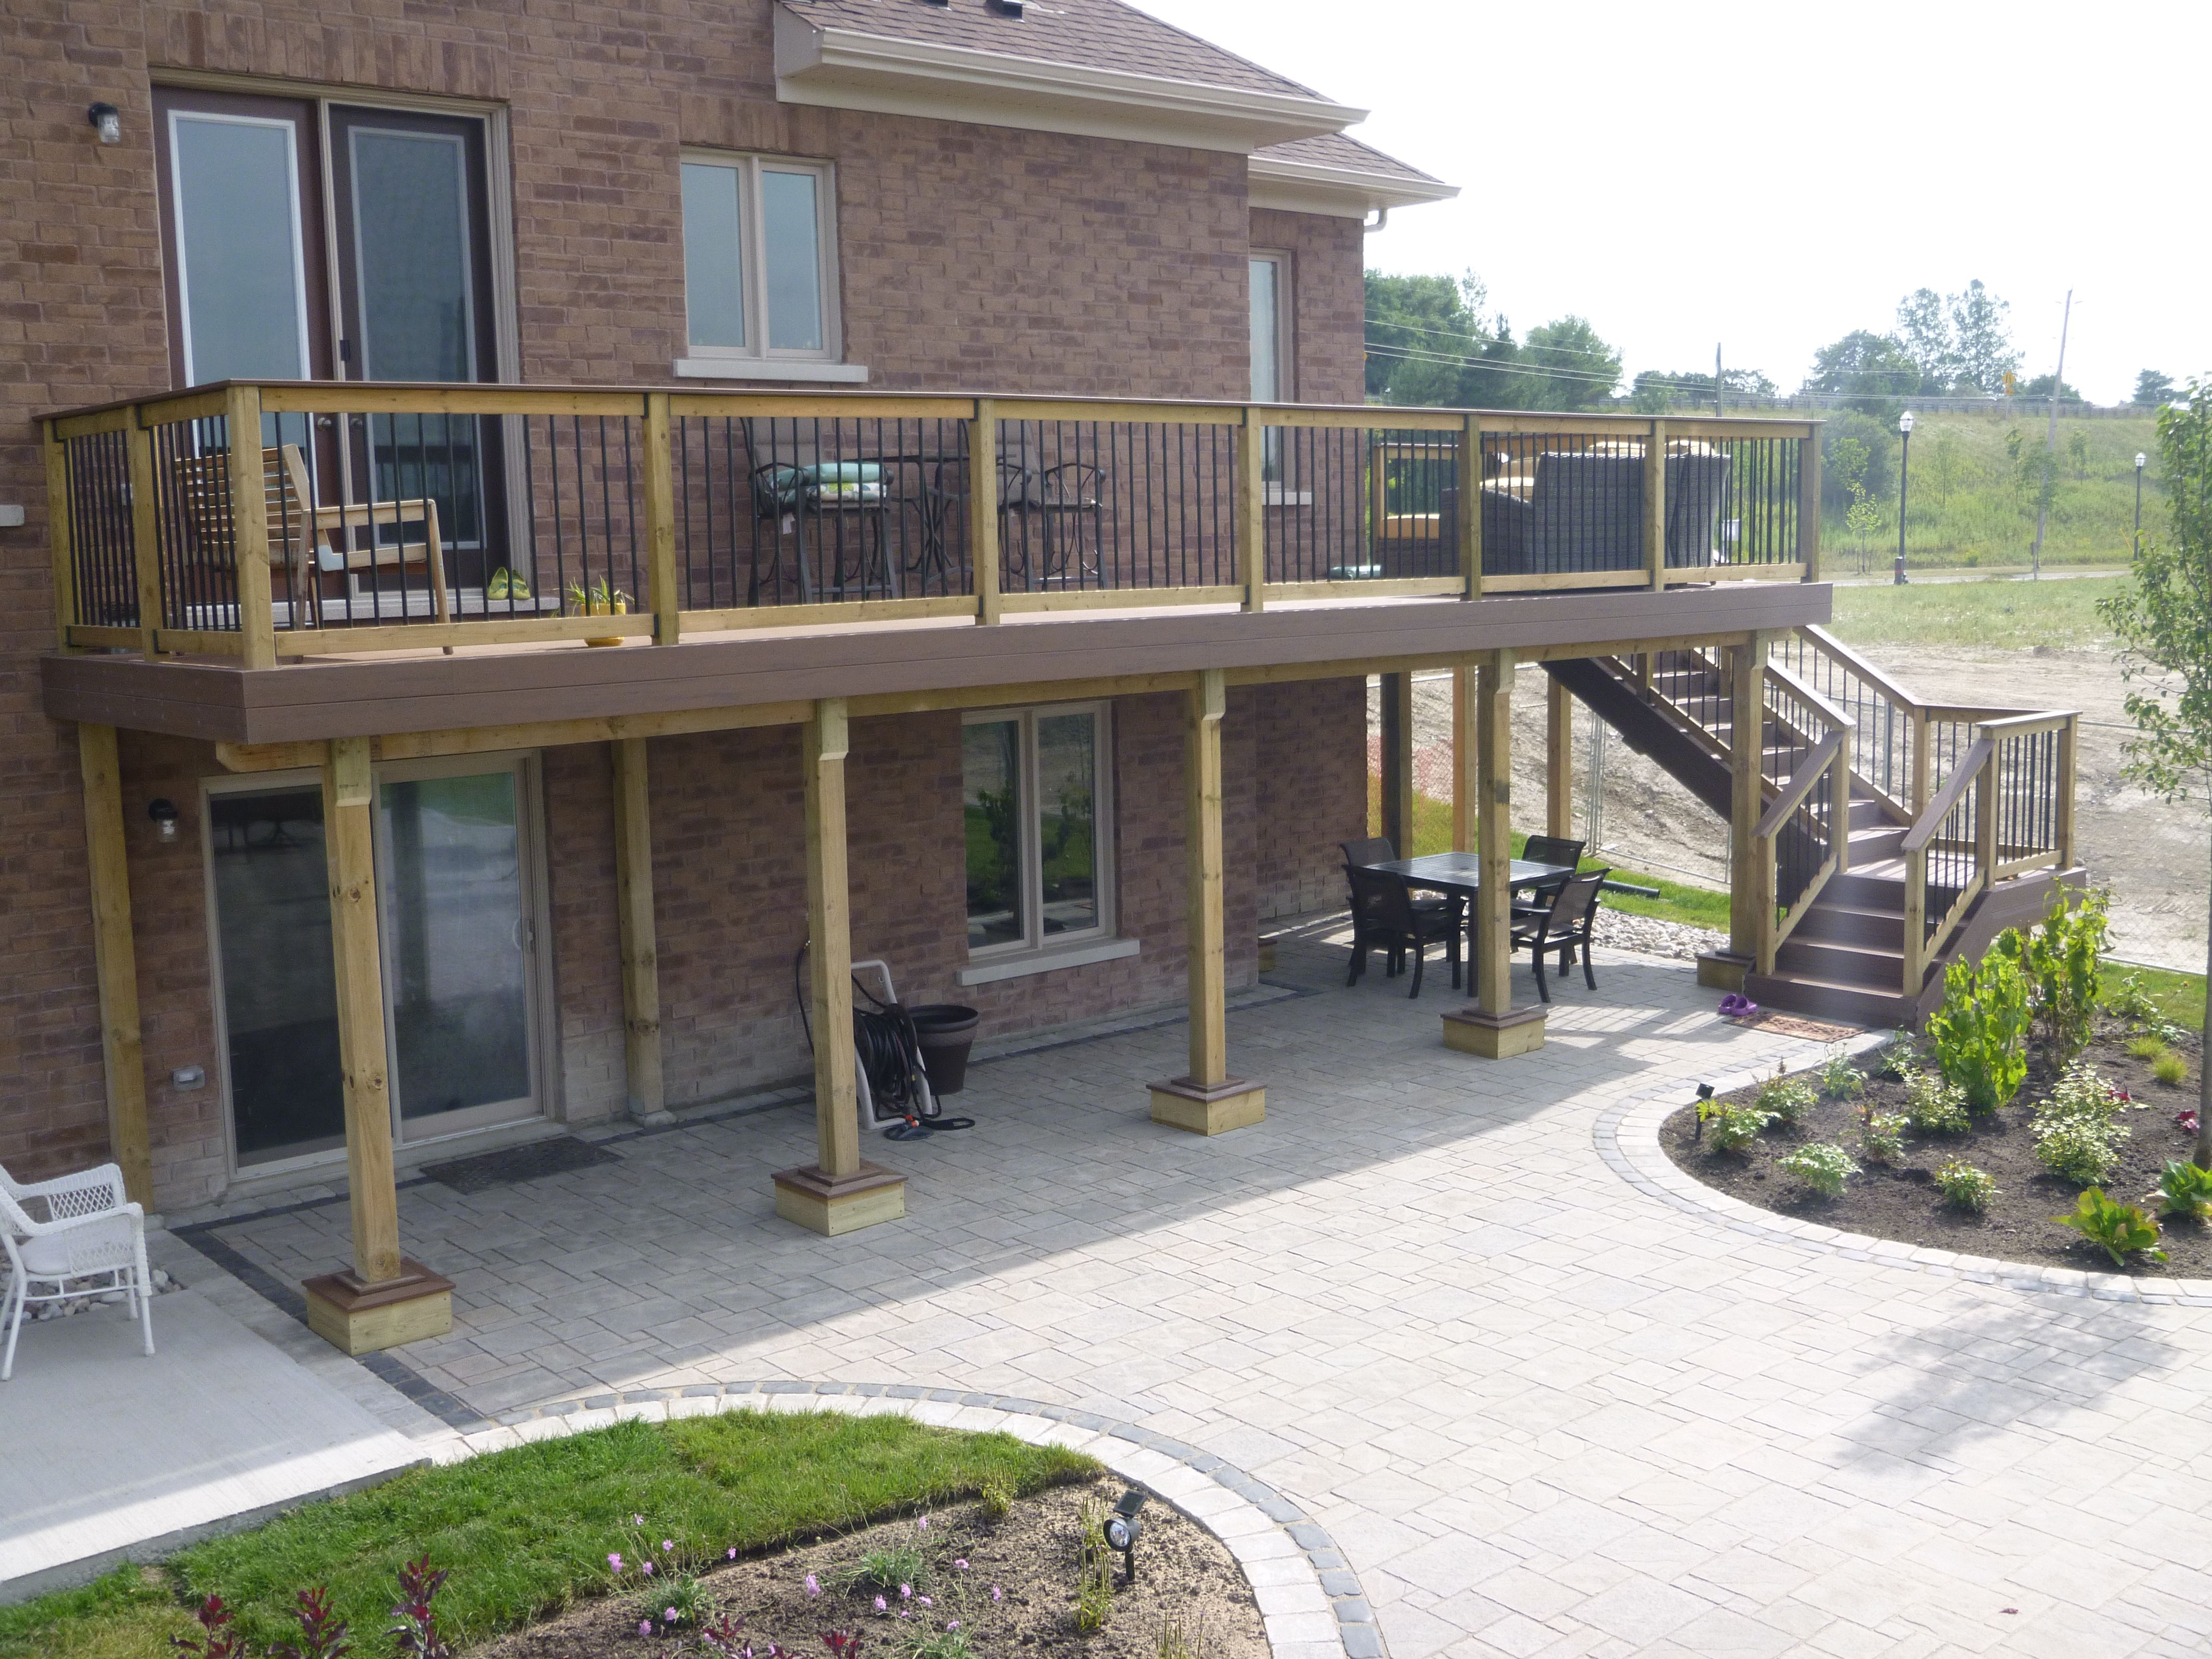 awesome deck over garage plans. Garage plans  High rise TT Terrain deck with awesome views large stone patio underneath